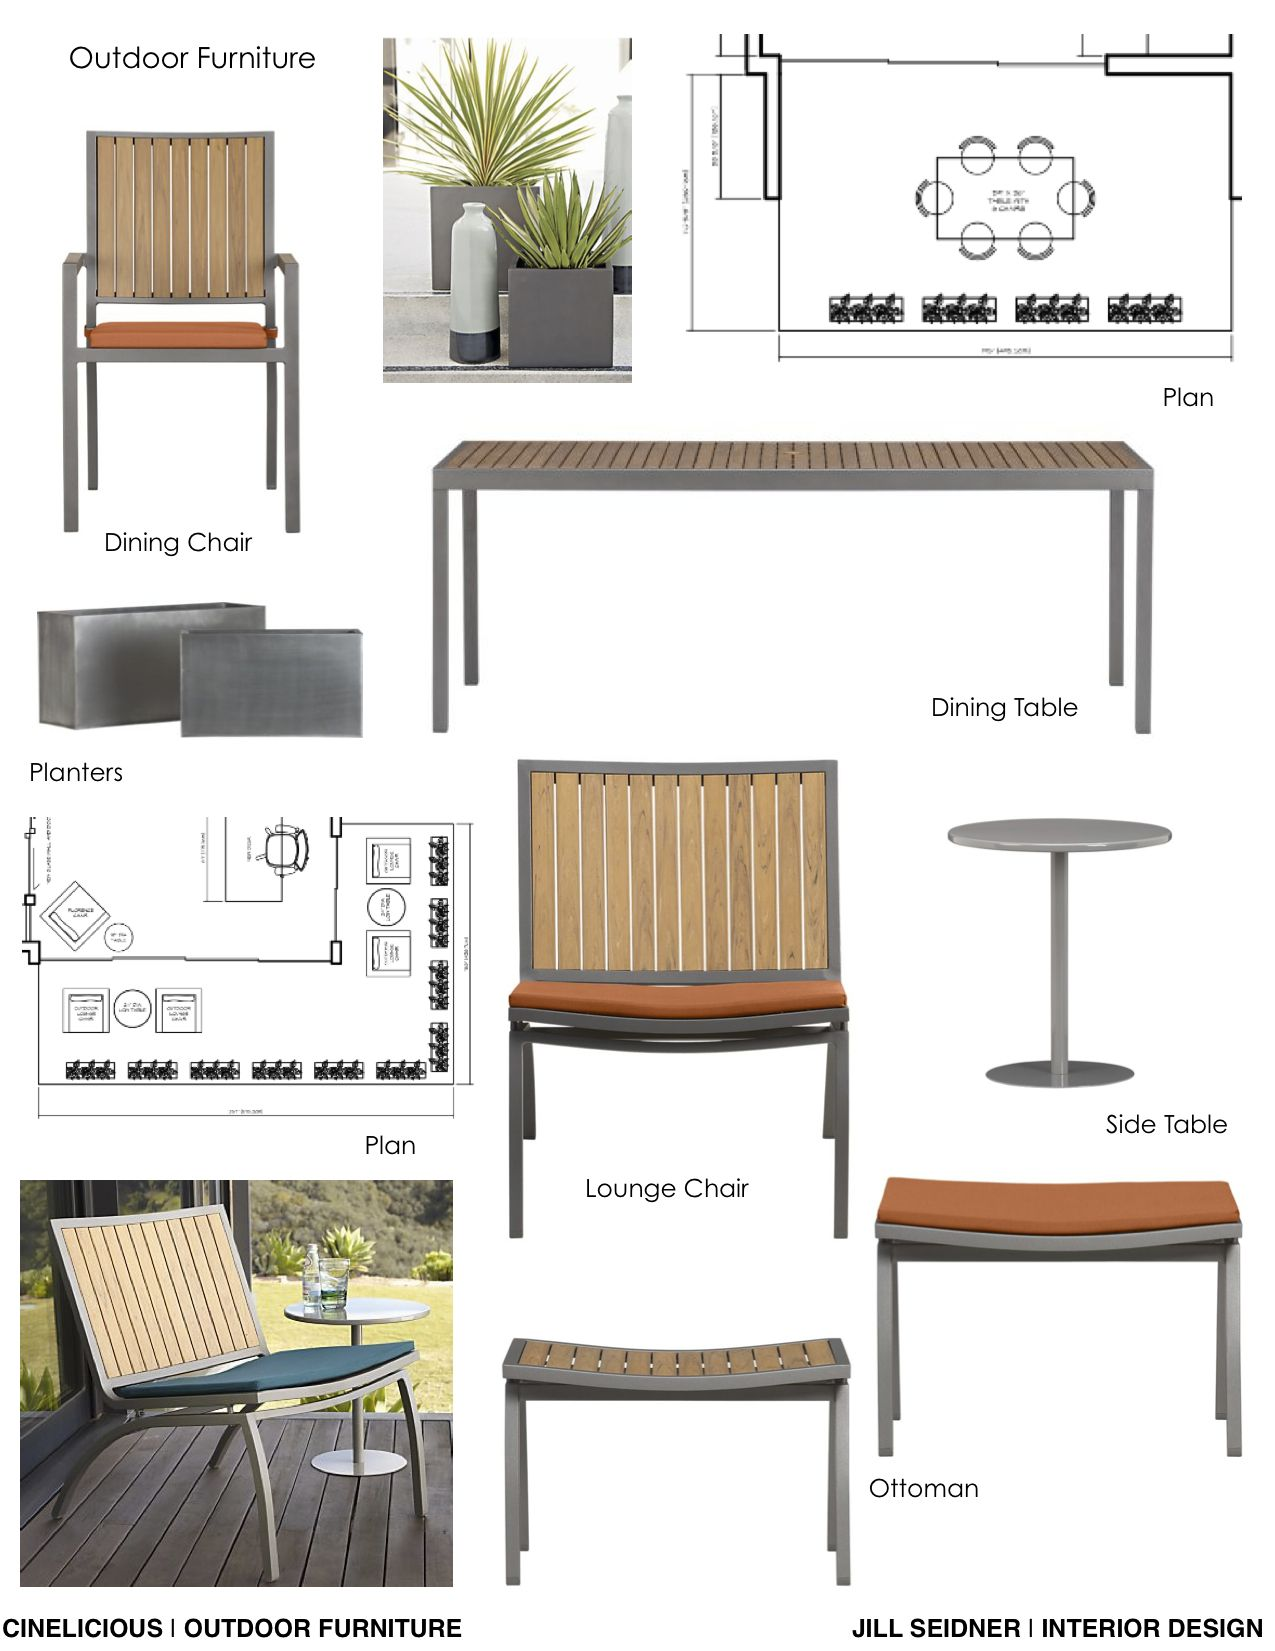 Cinelicious Office Hollywood Outdoor Furnishings Concept